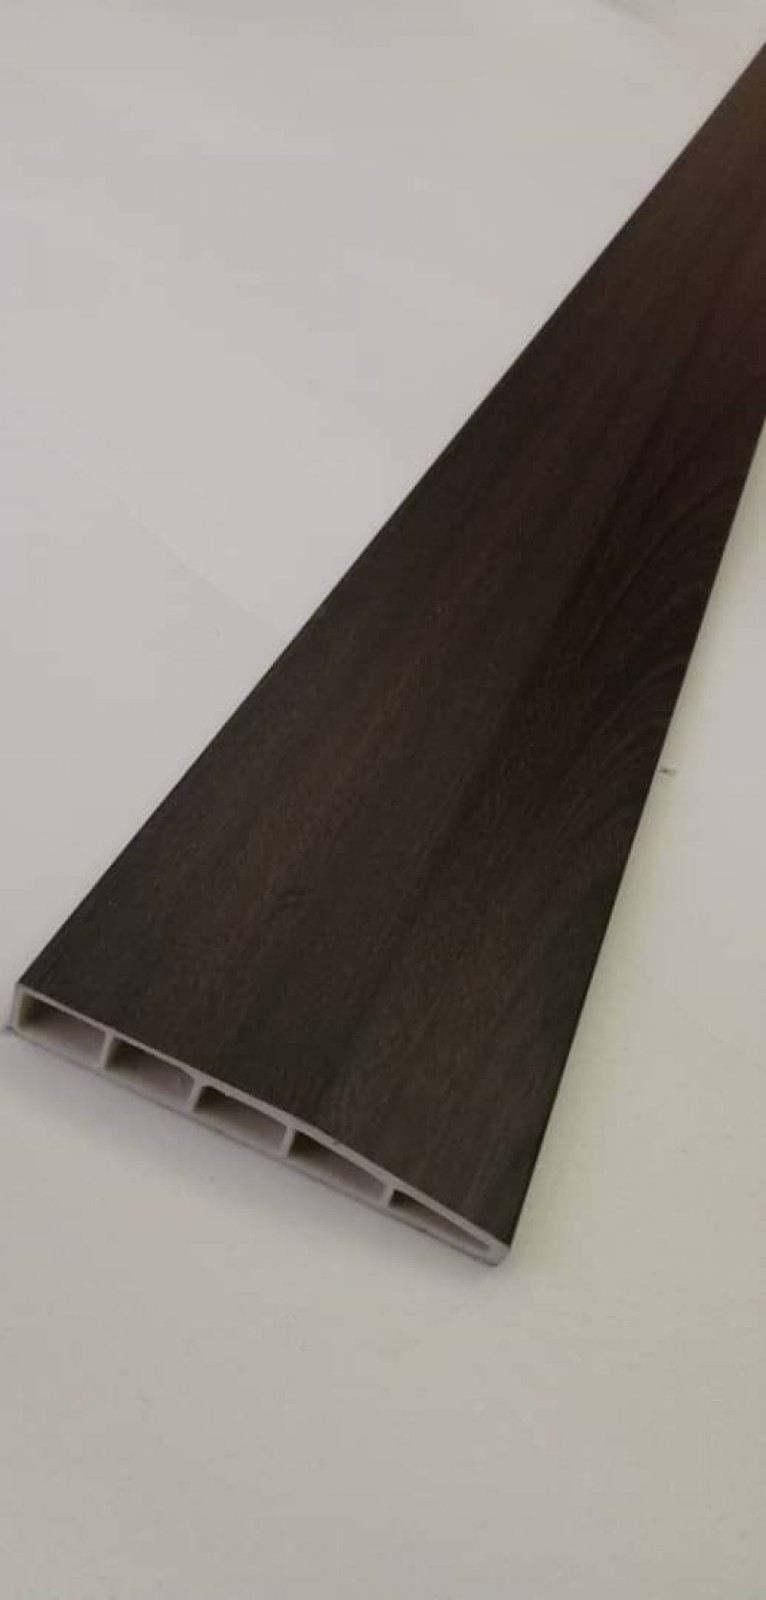 (PSK100-1033) 100mm PVC Skirting - Walnut